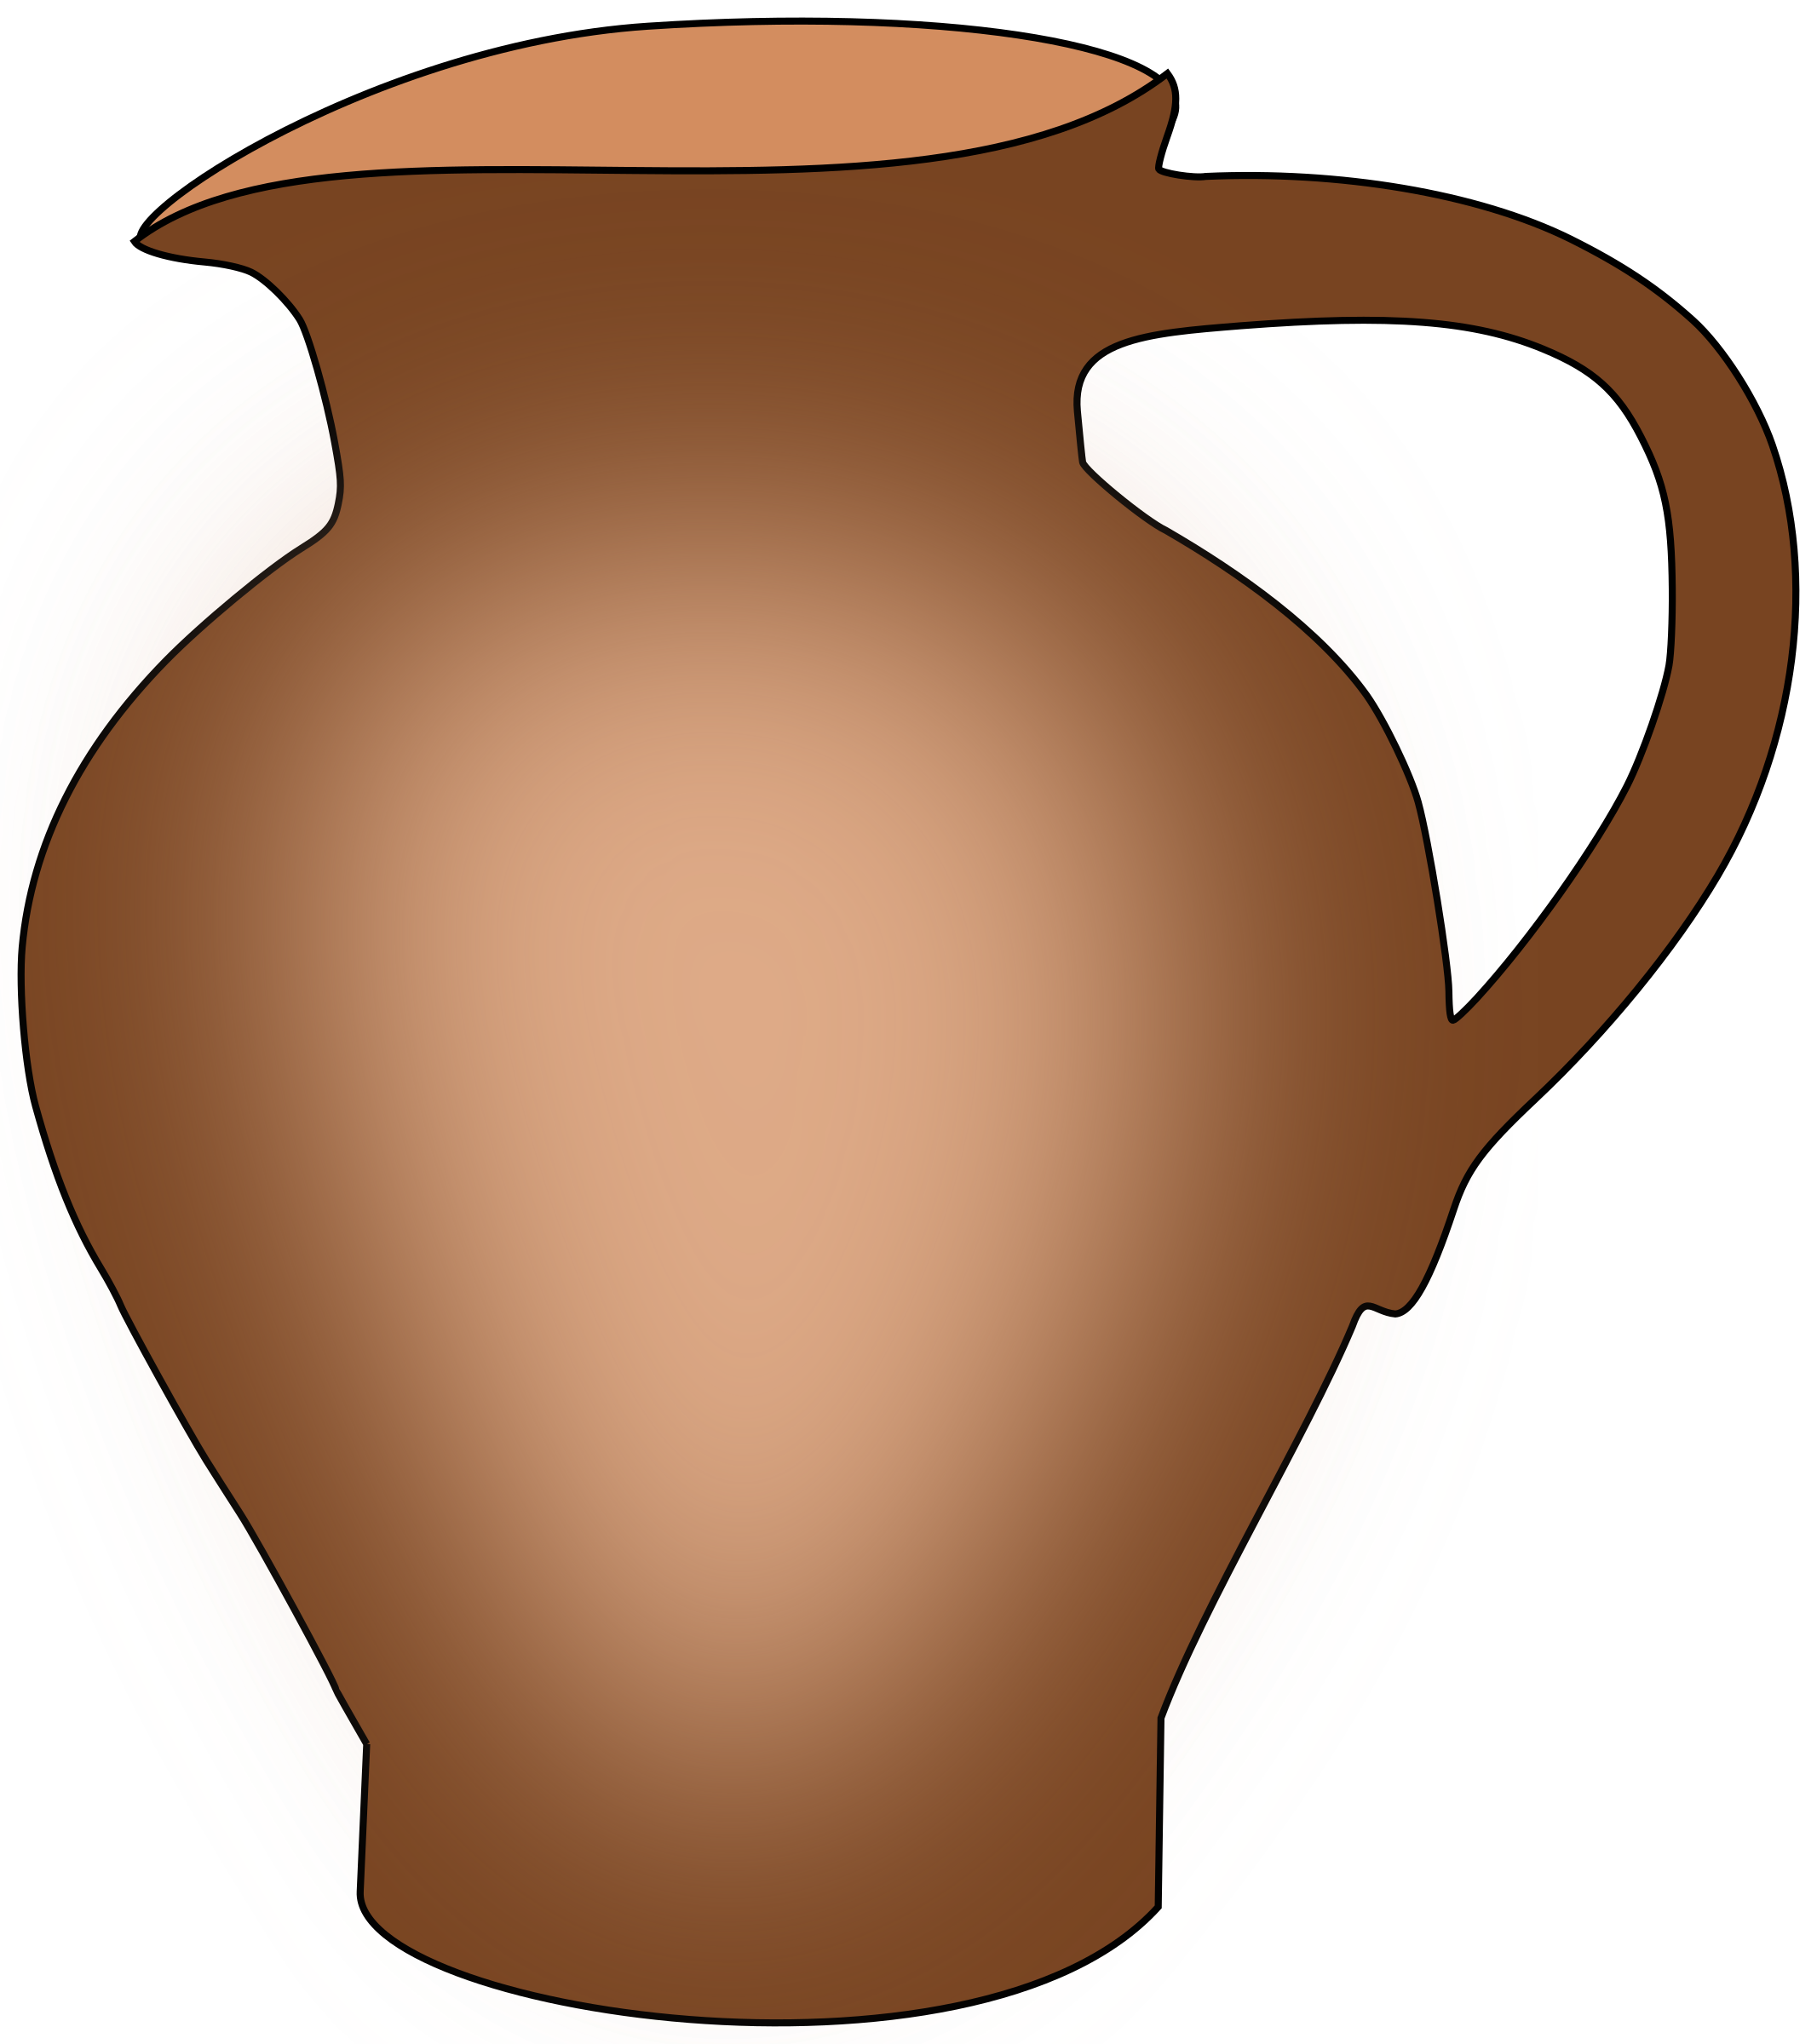 Ceramic pot big image. Water clipart simple